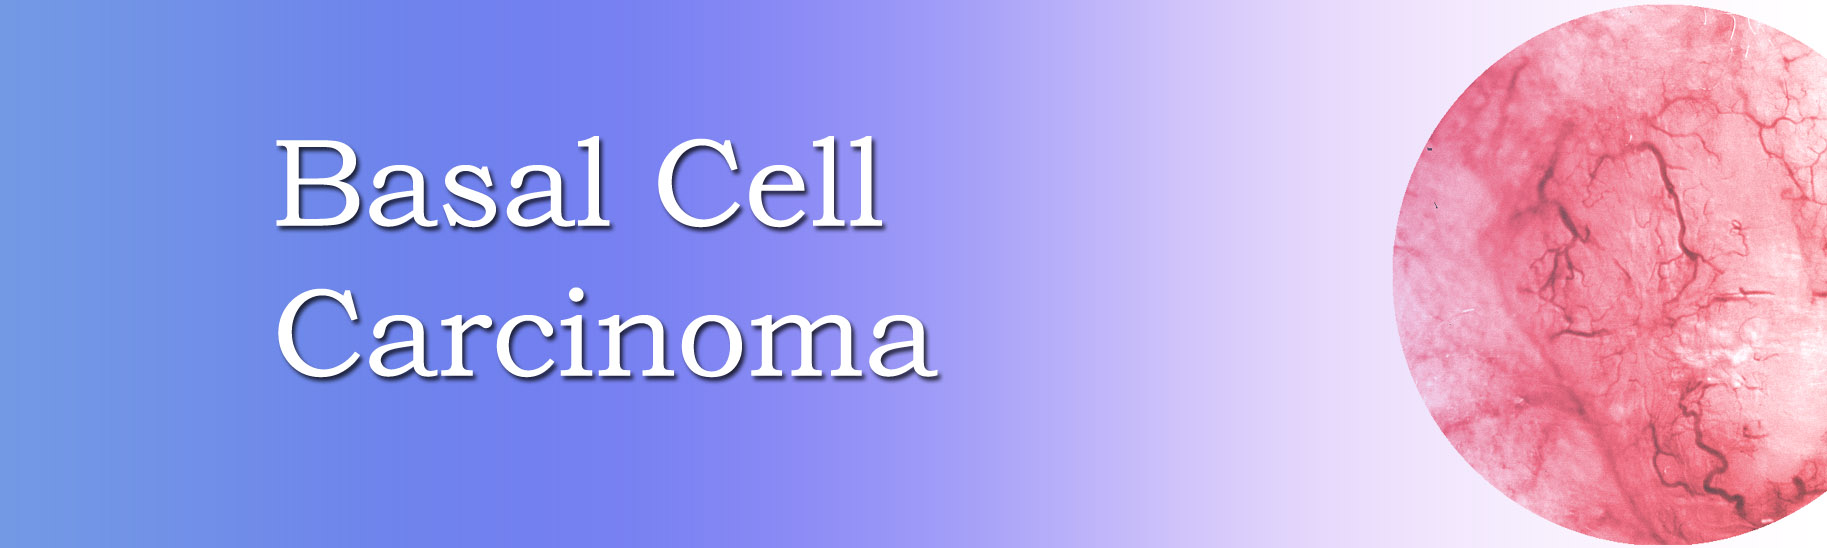 Picture for Basal cell carcinoma information